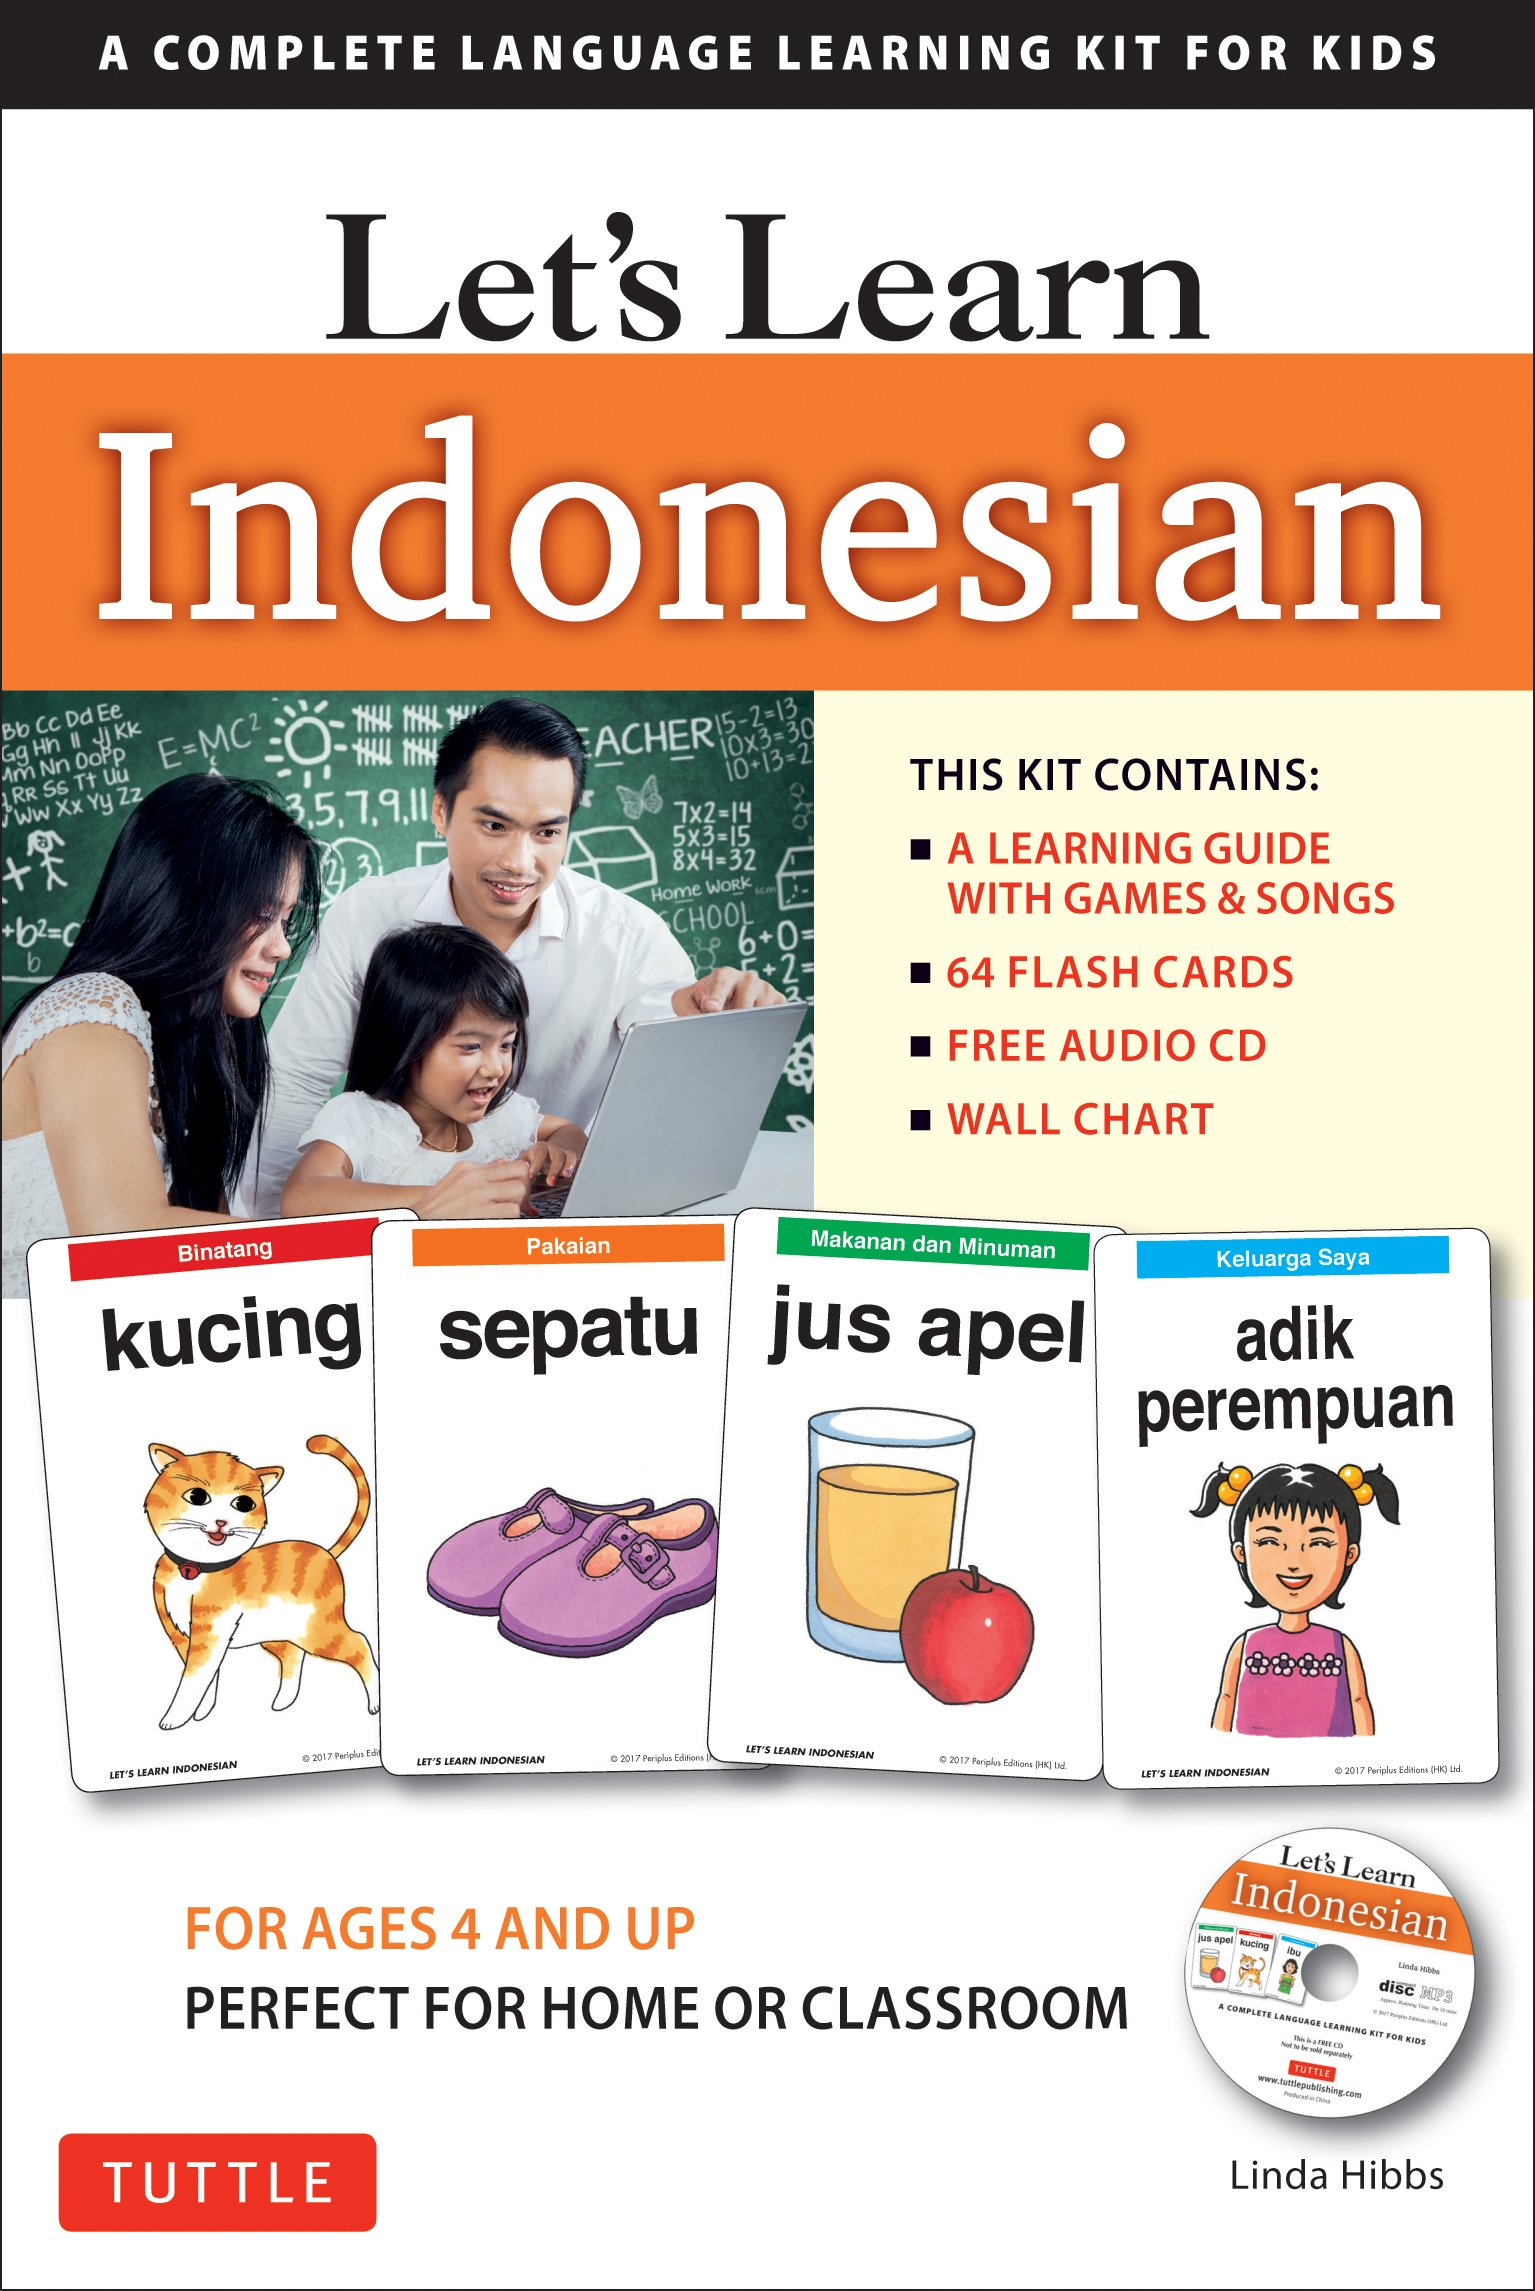 Let's Learn Indonesian Kit: A Complete Language Learning Kit for Kids (64 Flashcards, Audio CD, Games & Songs, Learning Guide and Wall Chart) PDF